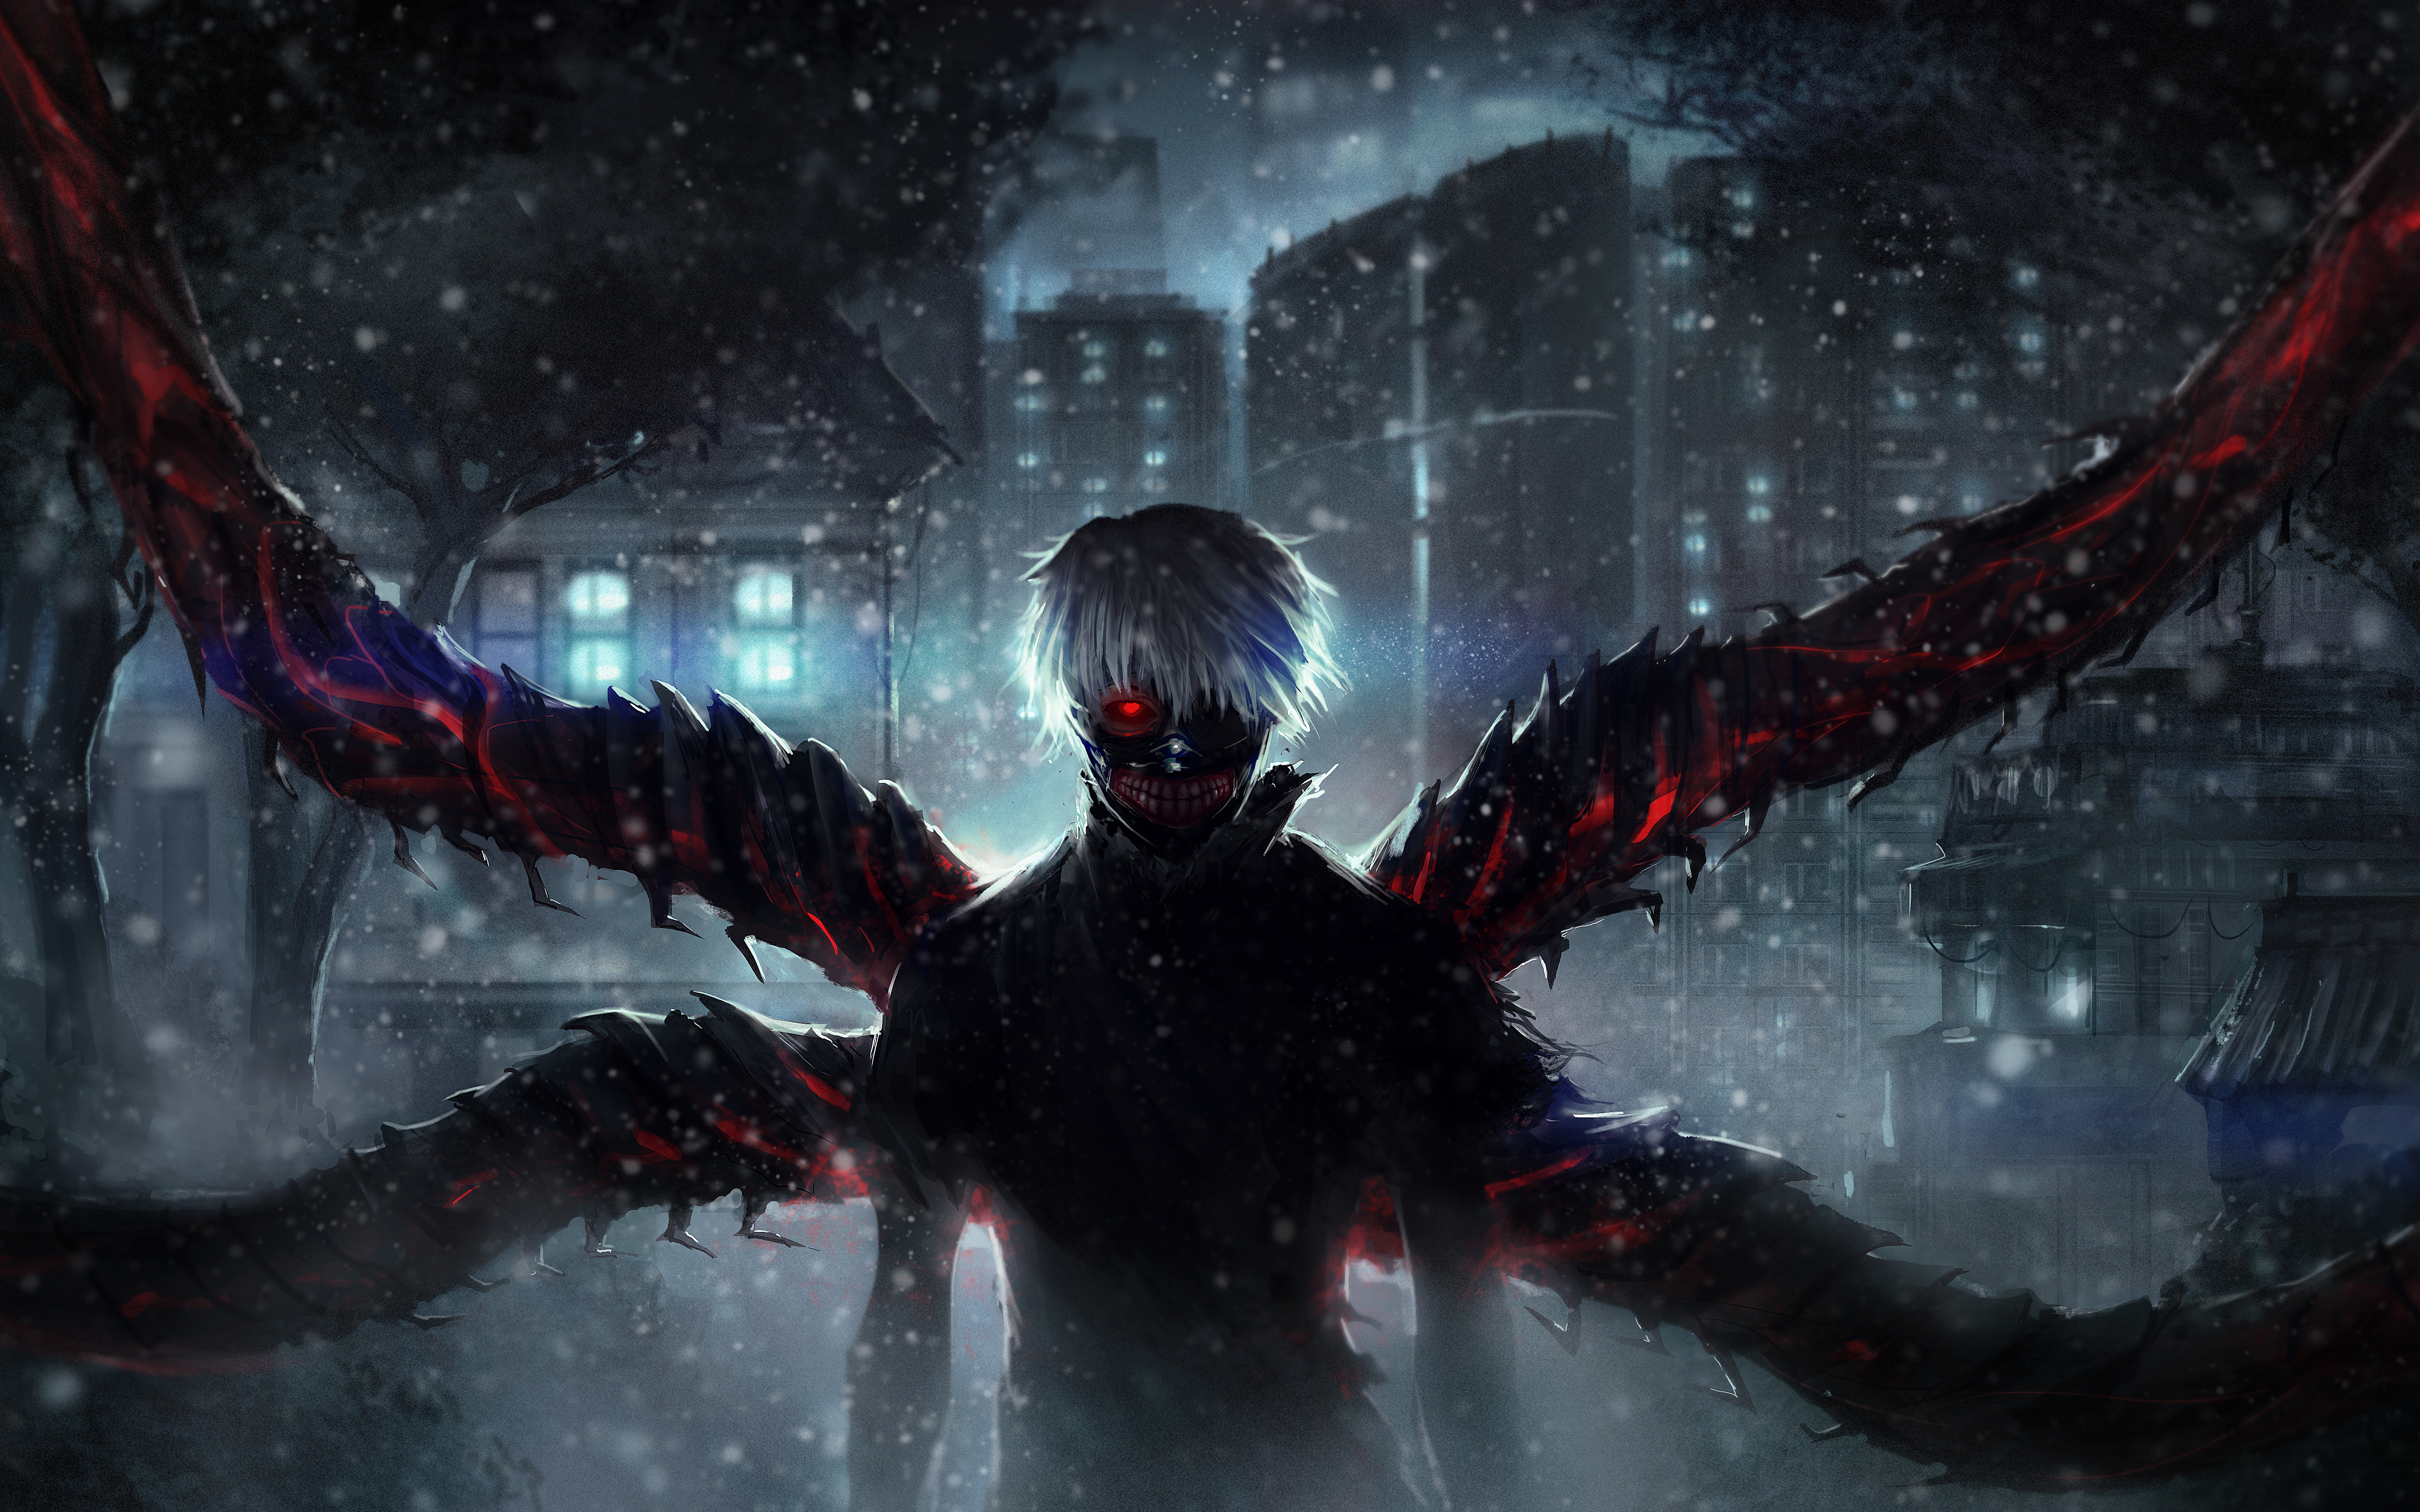 Tokyo ghoul ken kaneki 5k wallpapers hd wallpapers - 5k anime wallpaper ...